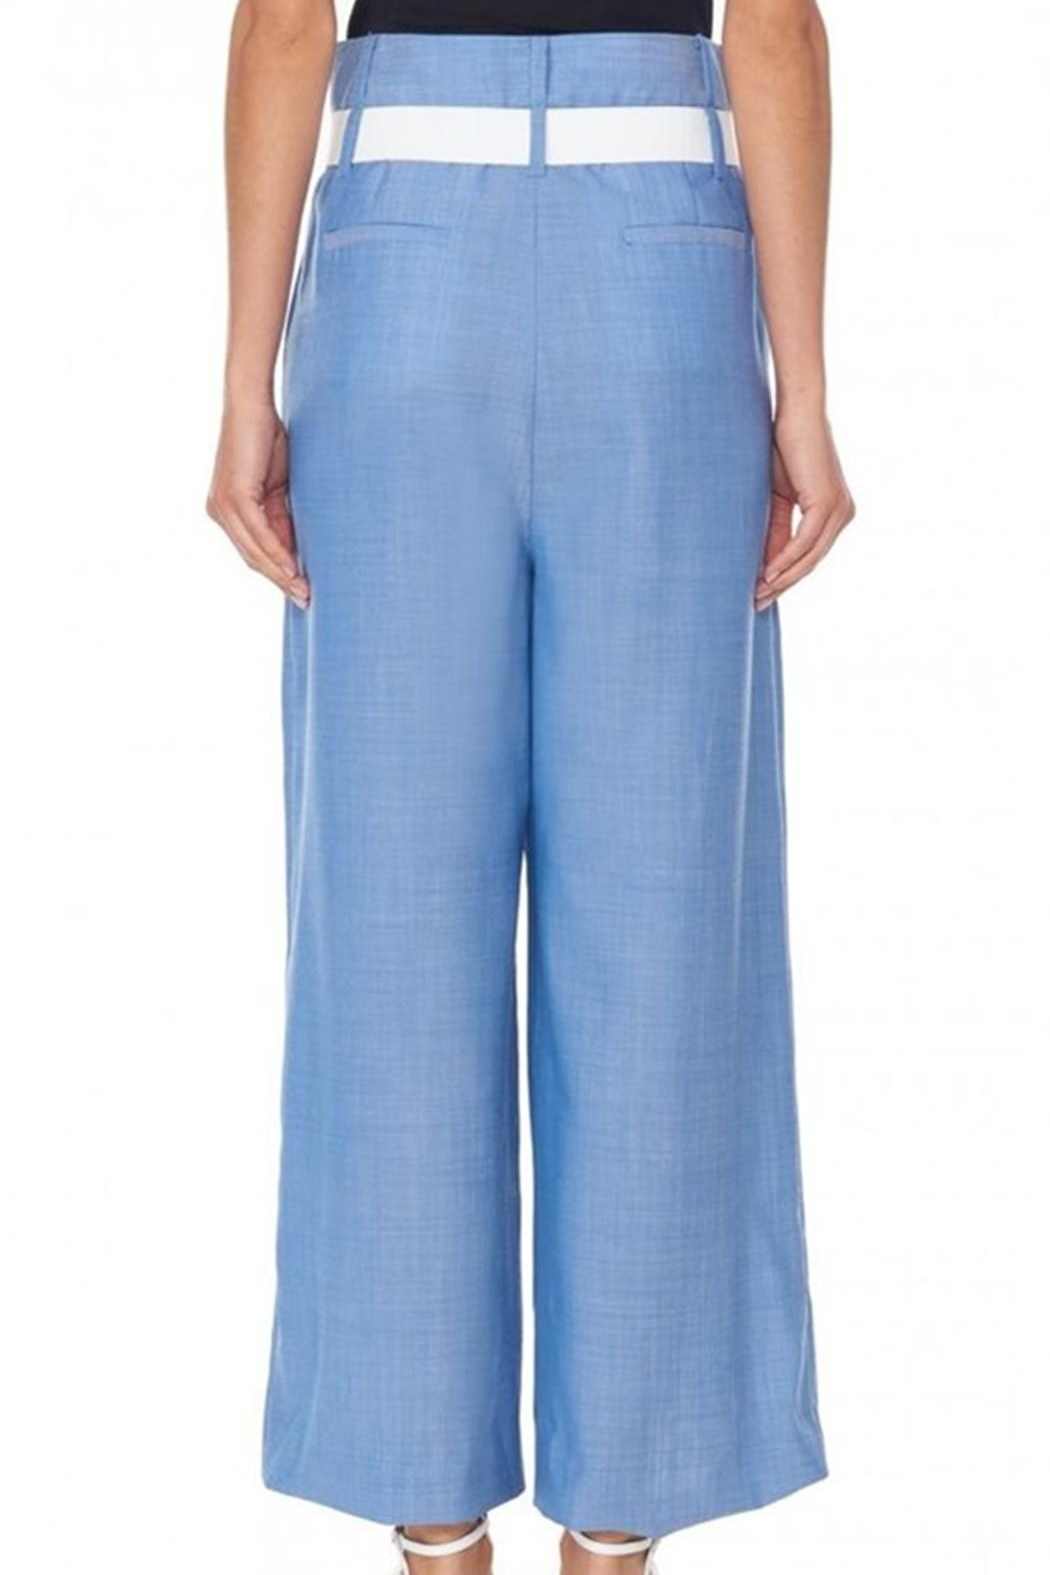 Tibi Serge Suiting Pant - Front Full Image